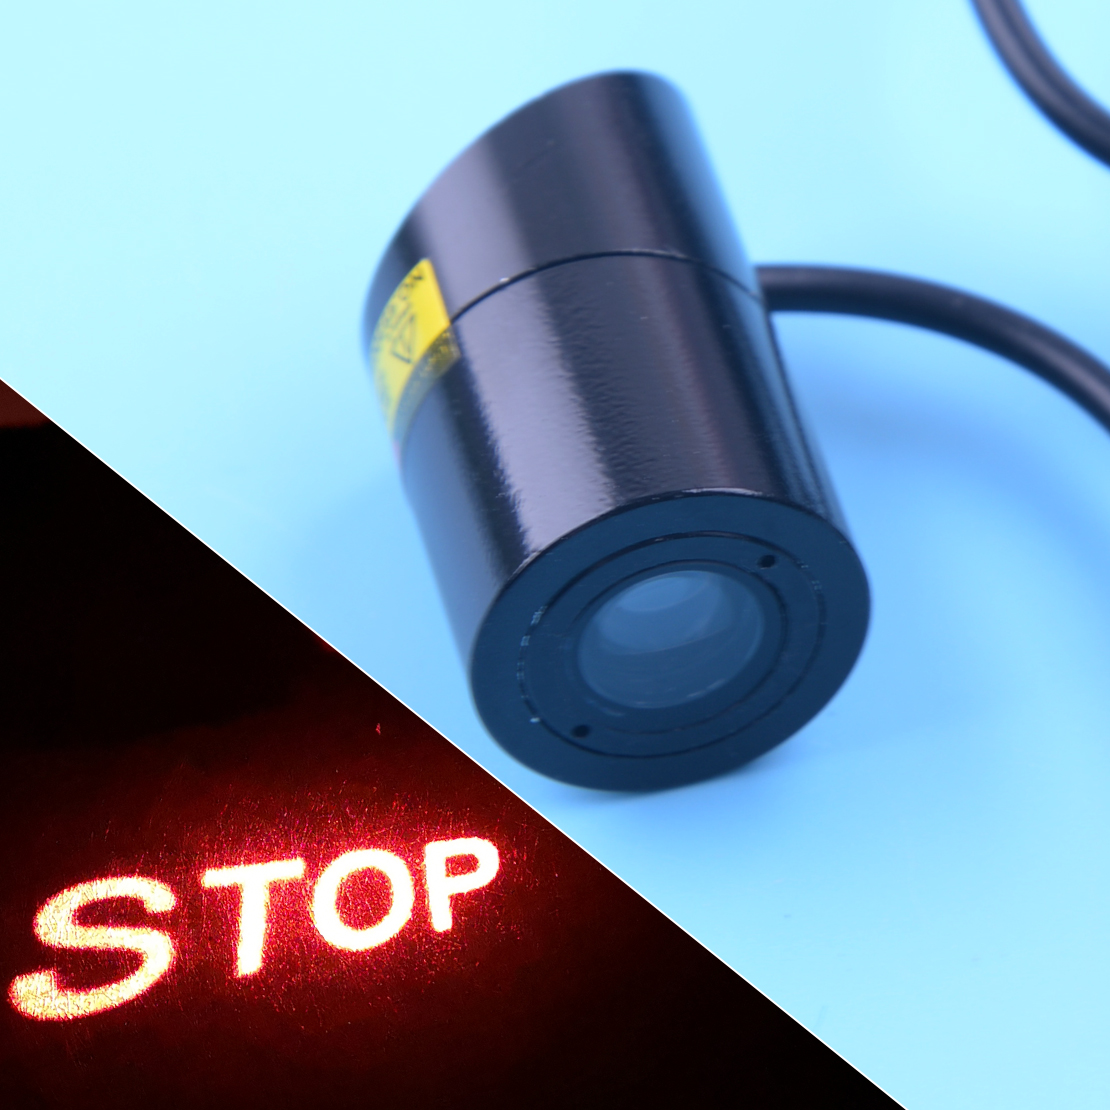 DWCX Car Styling STOP LED Light Tail Warning Brake Lamp Caution Projector Anti-Collision Accessories